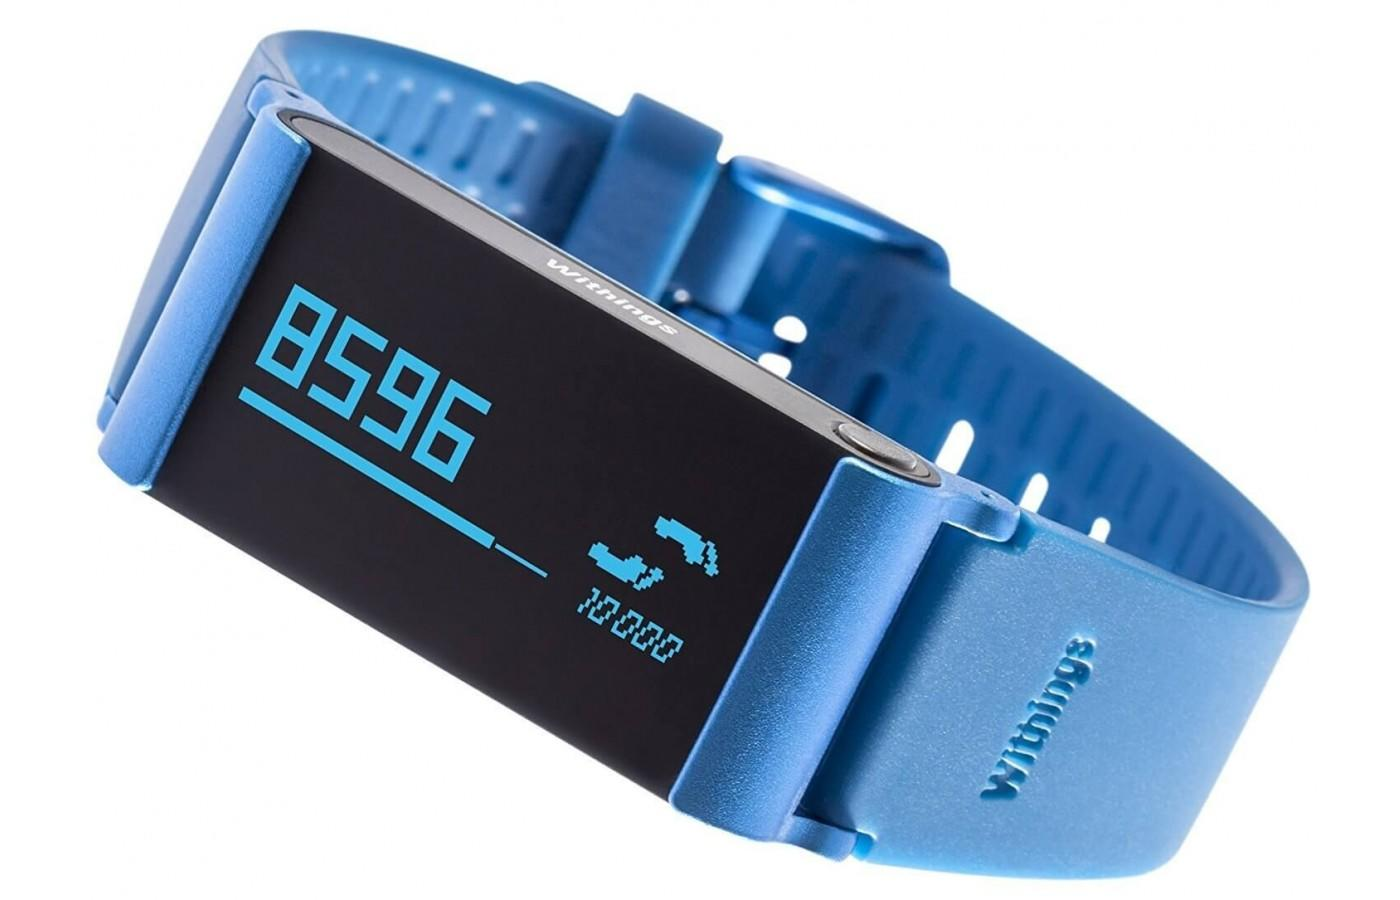 The Withings Pulse Ox comes in black and blue as well as leather